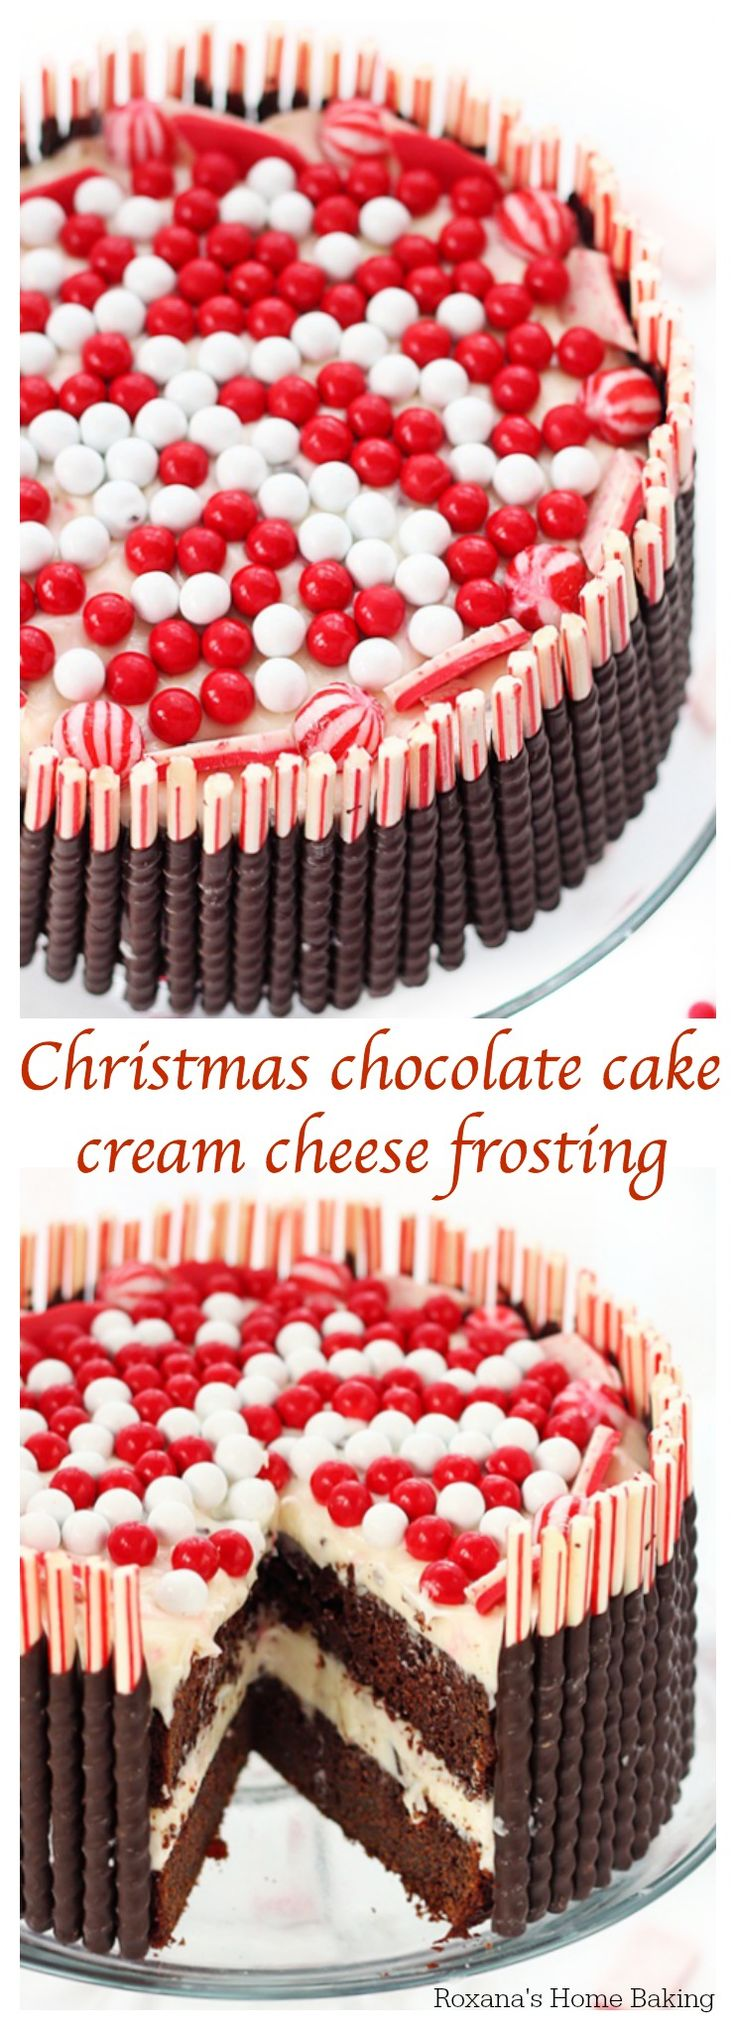 Soft, airy, moist and rich chocolate cake layered with peppermint-bark cream cheese frosting and decorated with Christmas Candy. A cake to impress.